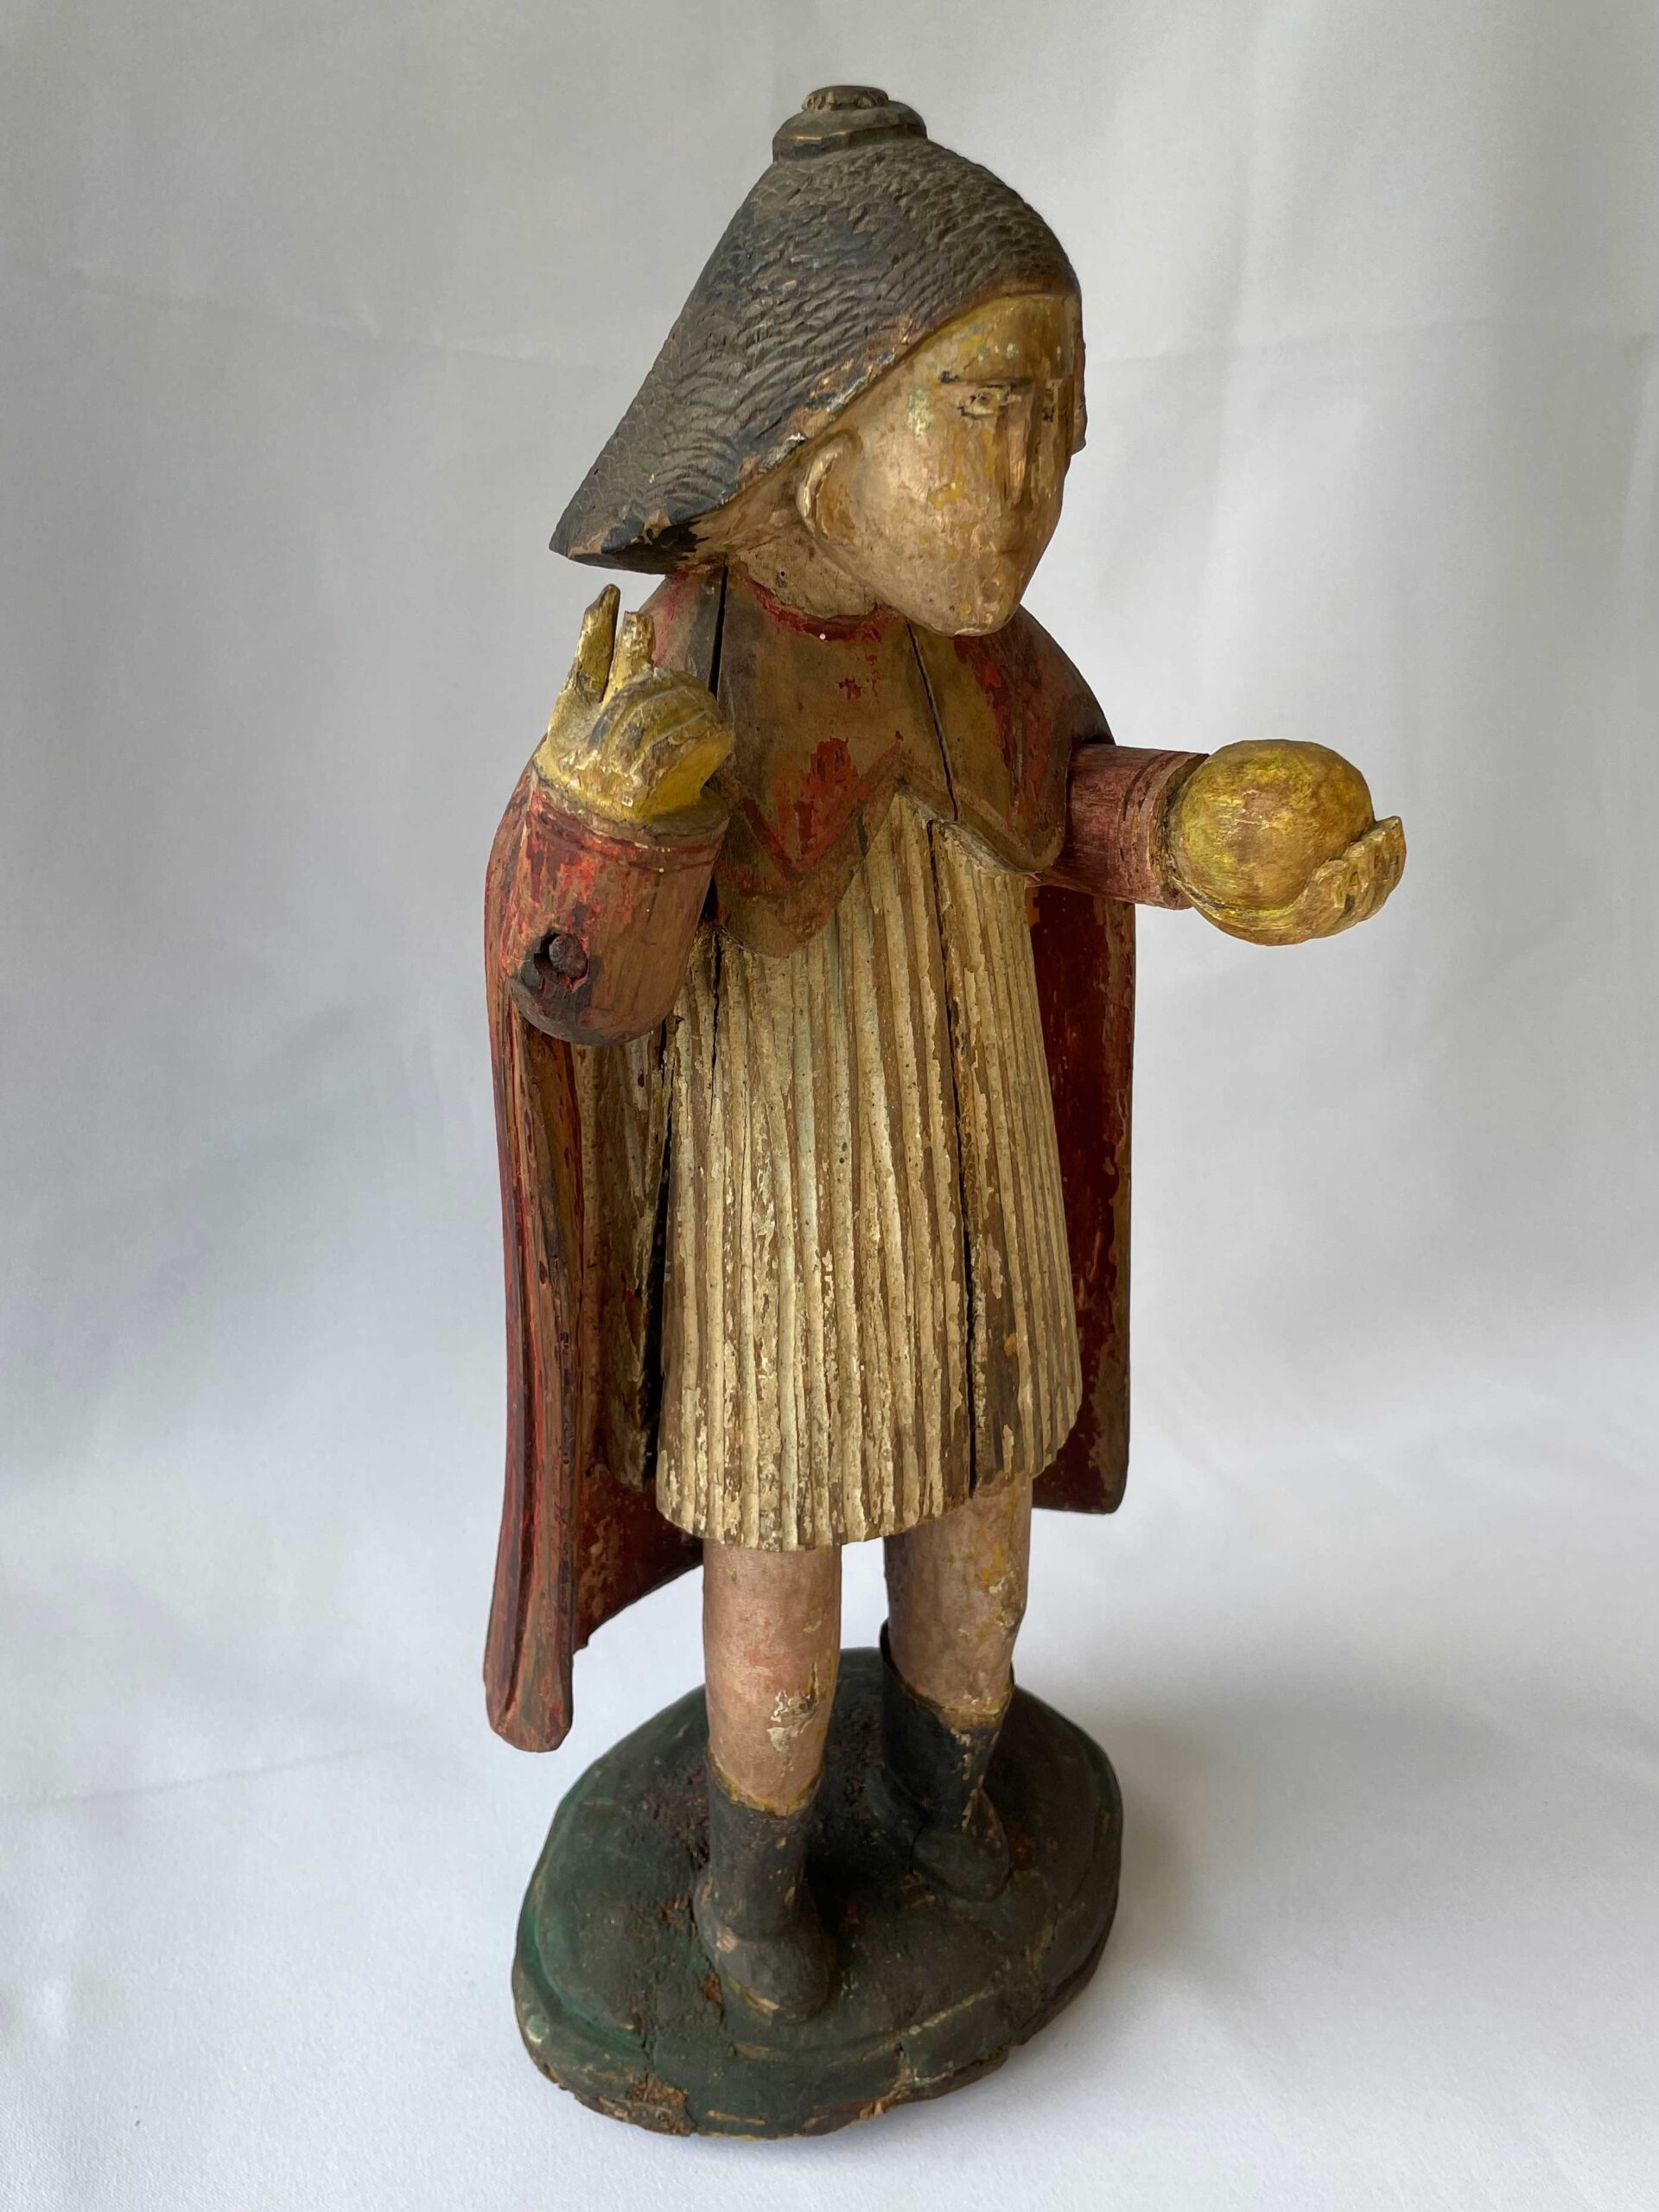 Santo Niño (Holy Child), Siquijor (19th Century to the early 20th century)